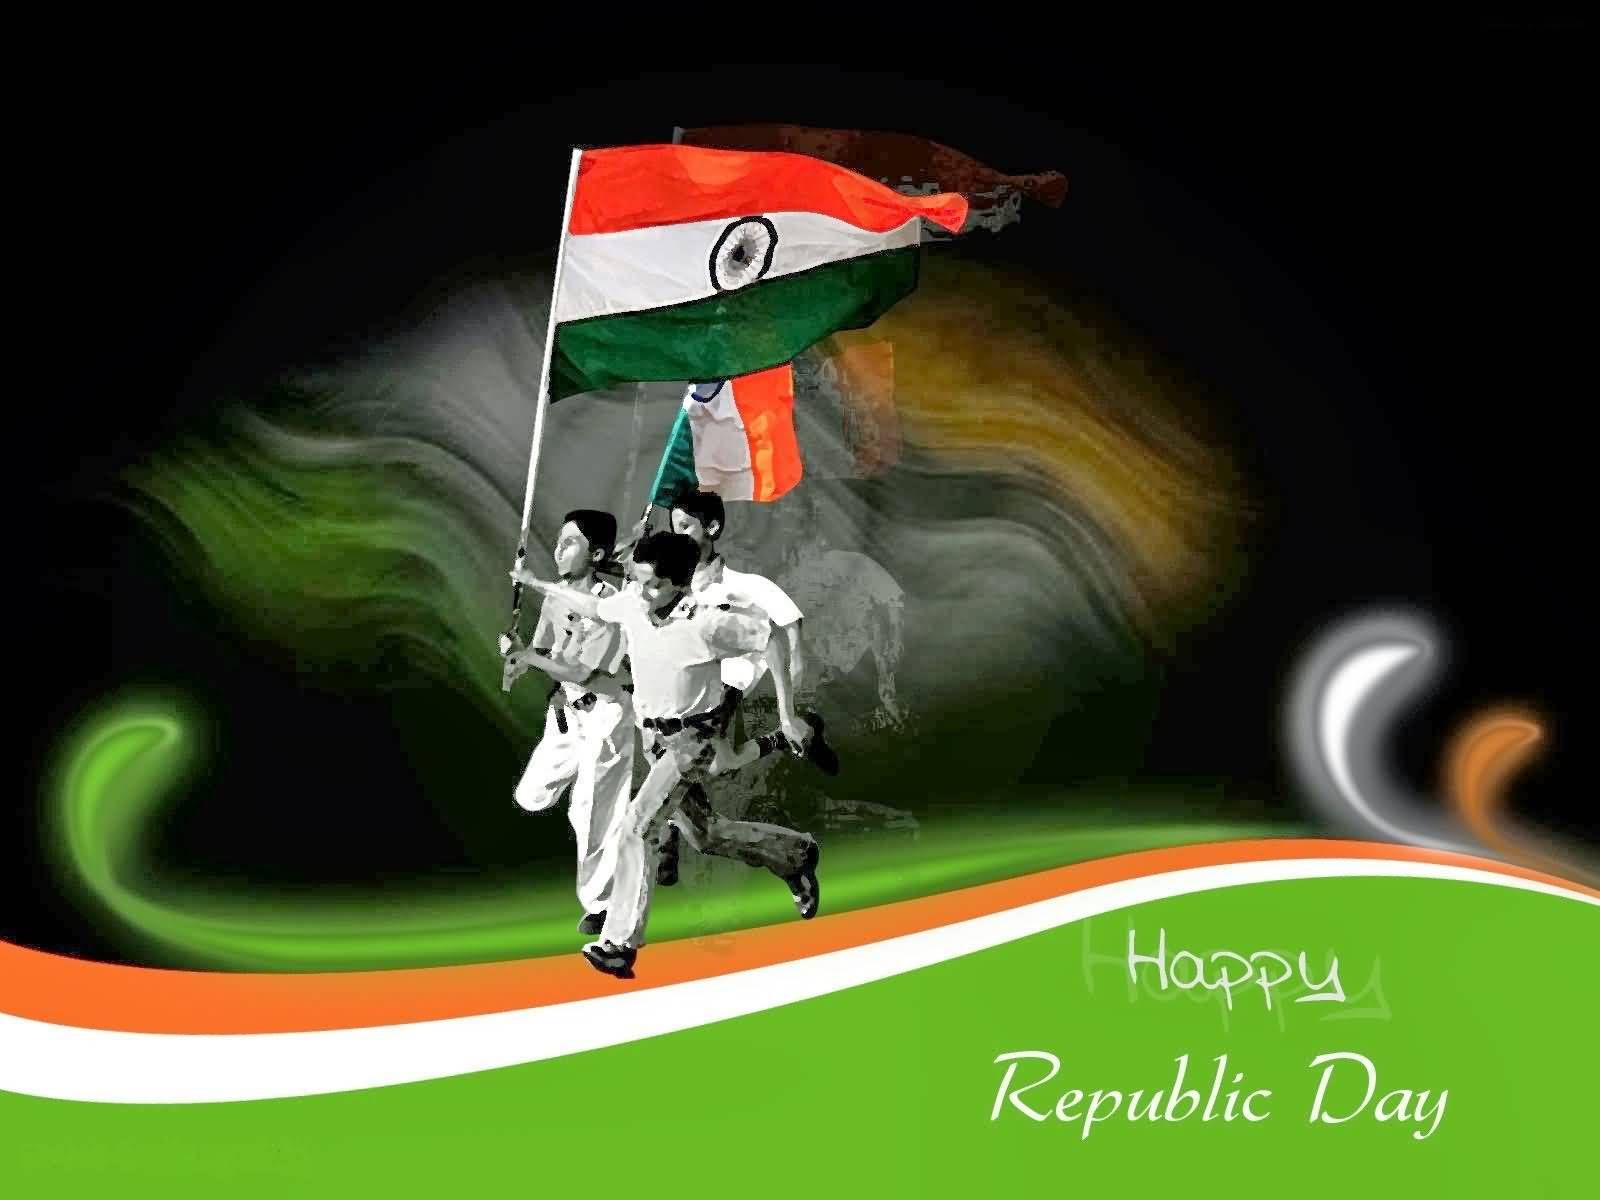 Loving Your Country Makes You Happier Happy Republic Day Make Happy Foundation Republic Day Wallpaper Backgrounds 2017 Wallpaper Happy republic day quotes 26 january